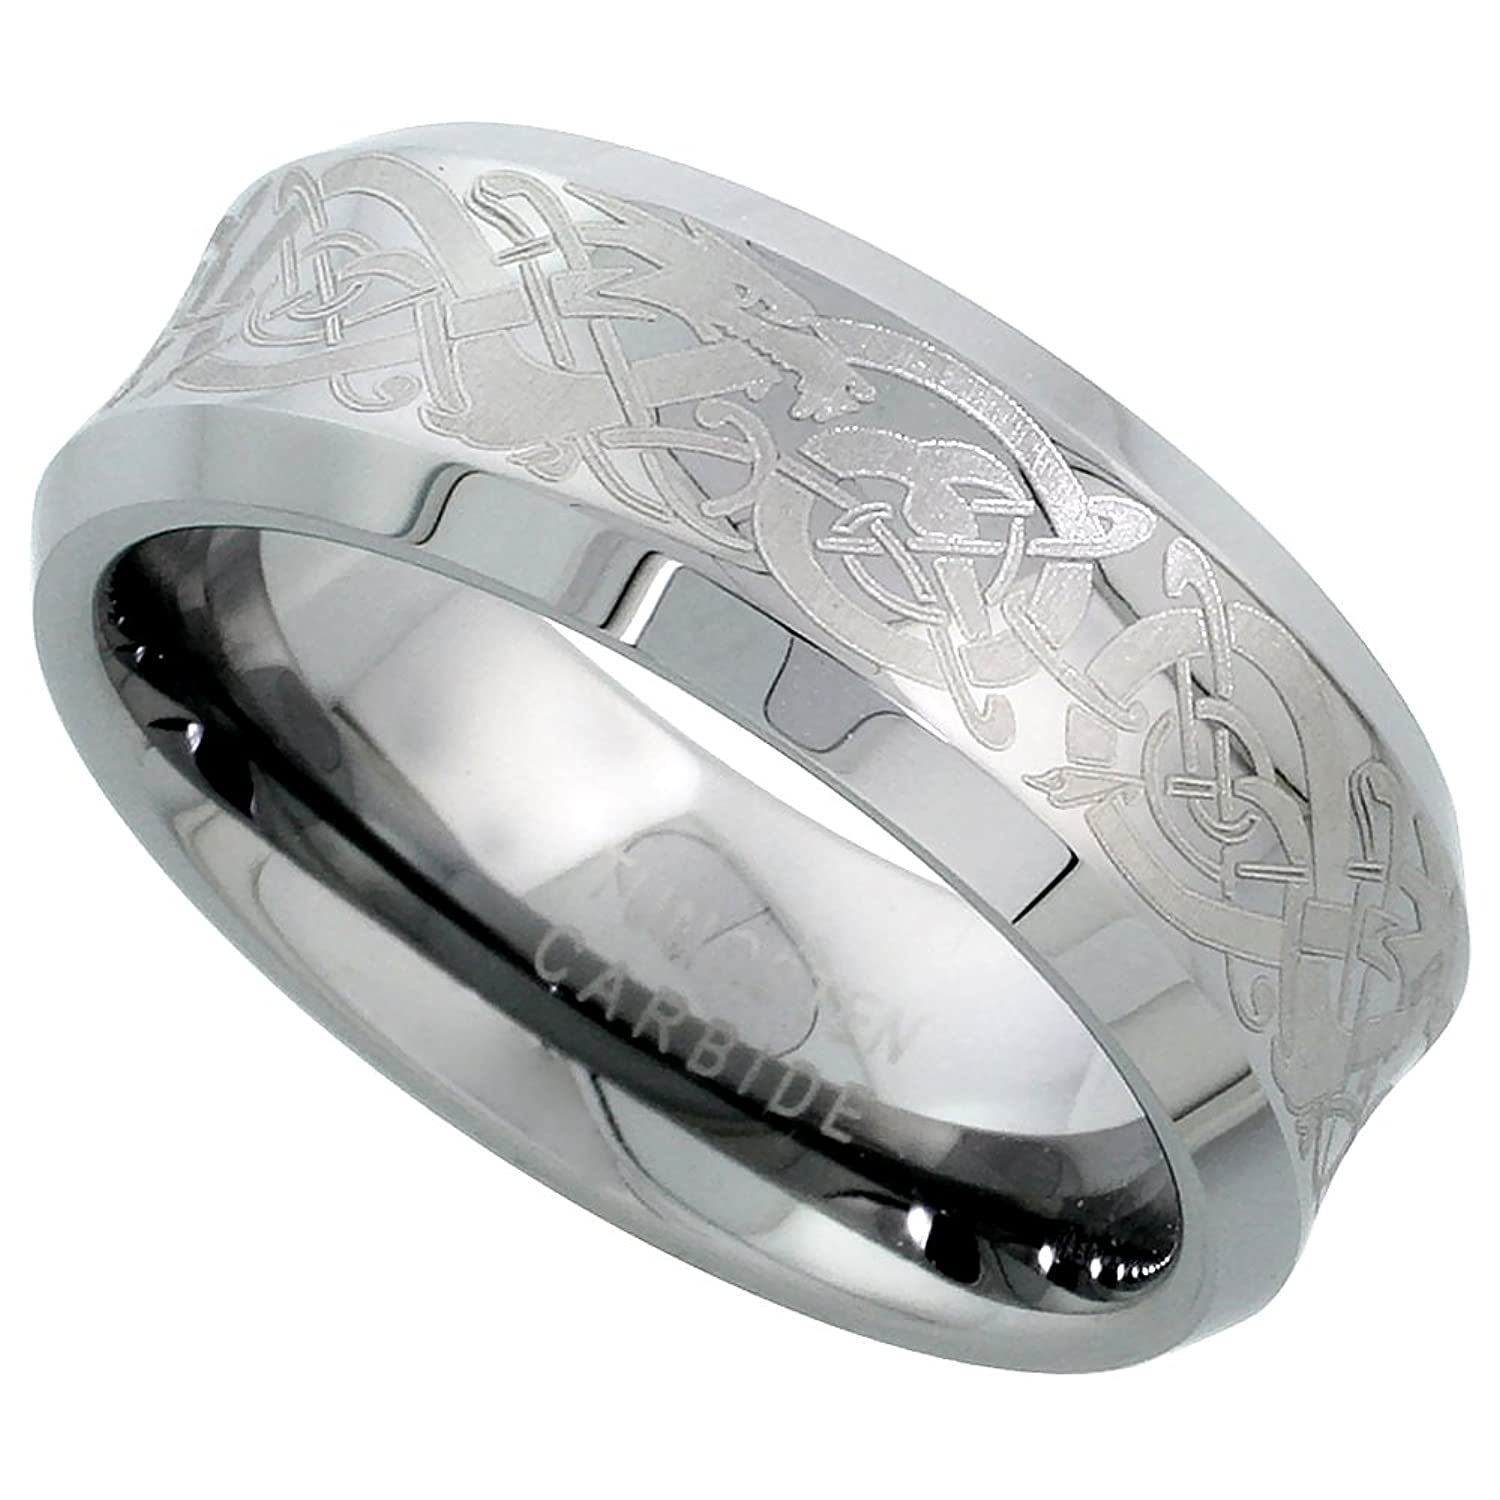 8mm Tungsten 900 TM Wedding Ring Concave Etched Celtic Dragon